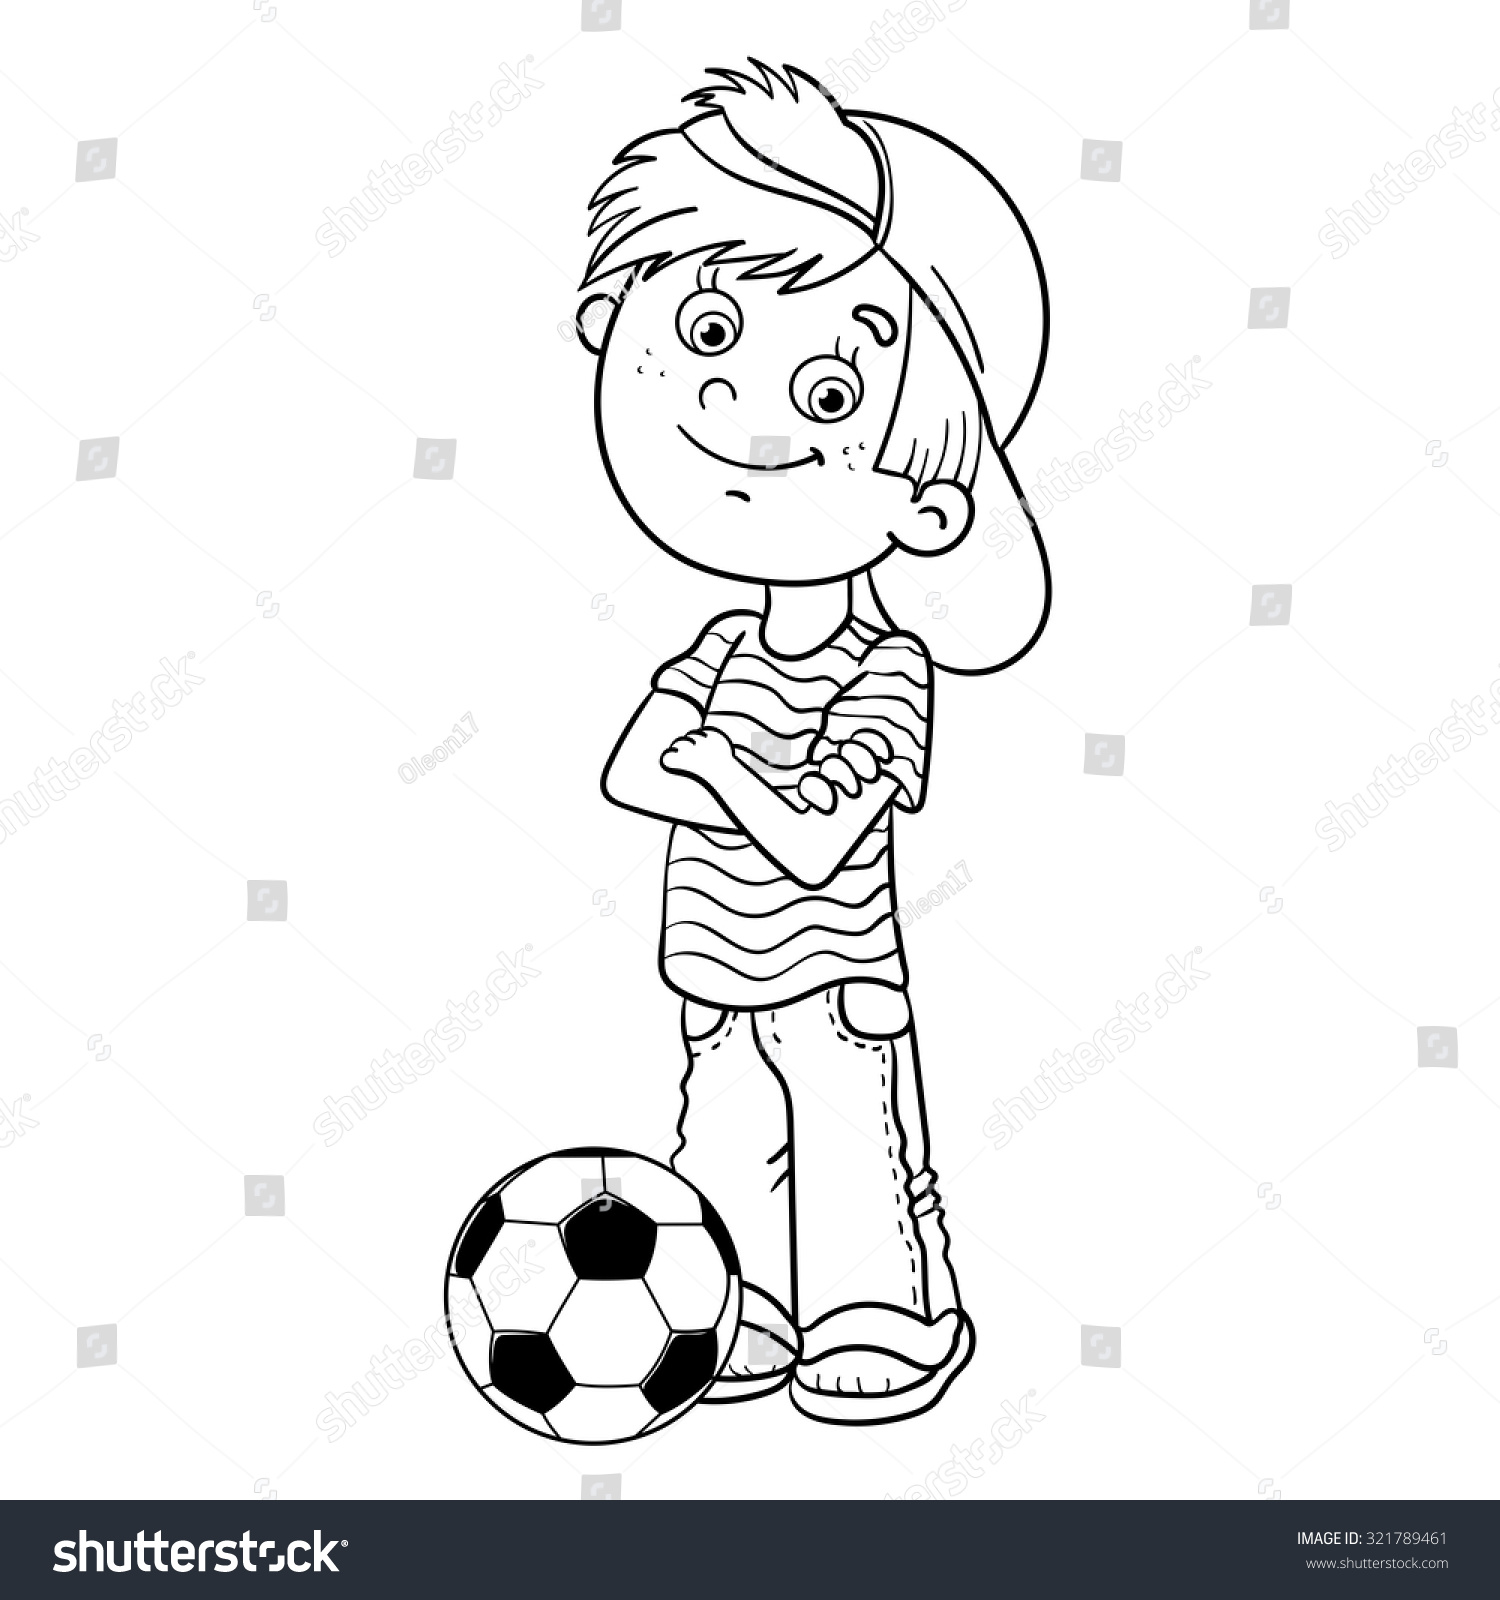 coloring page outline cartoon boy soccer stock vector 321789461